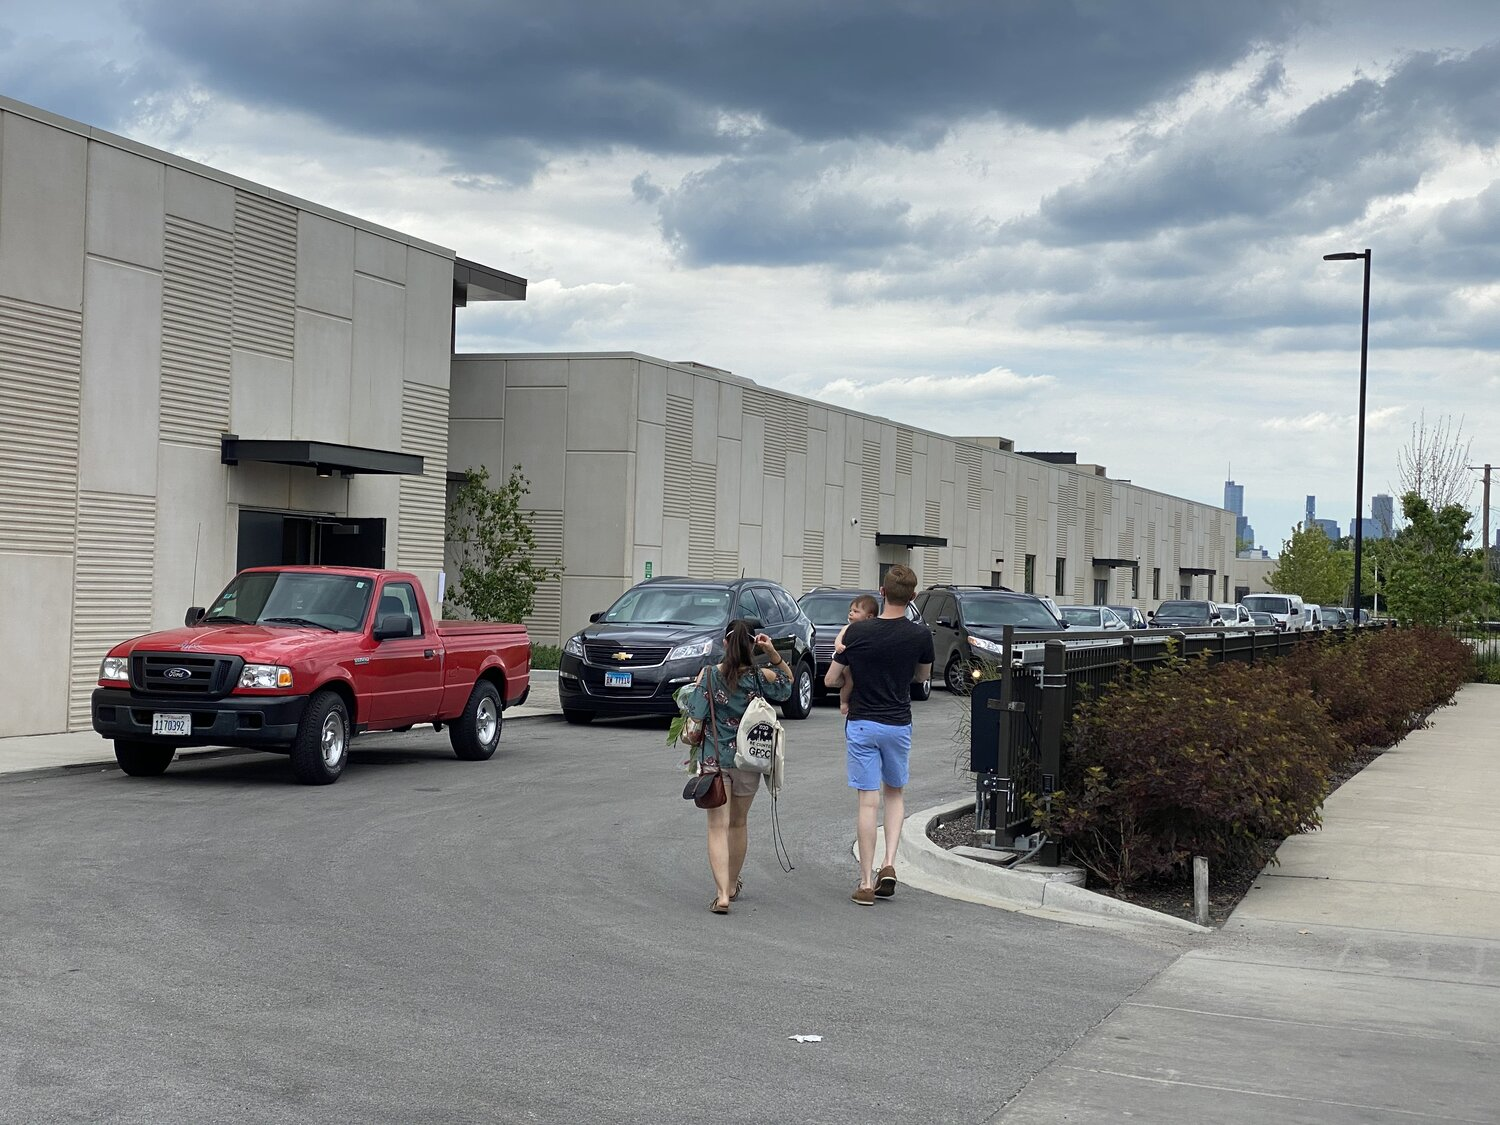 Drivers wait in line to purchase products at The Garfield Park Neighborhood Market in The Hatchery's parking lot on July 11. 2020. Photo by Mariah McBride.